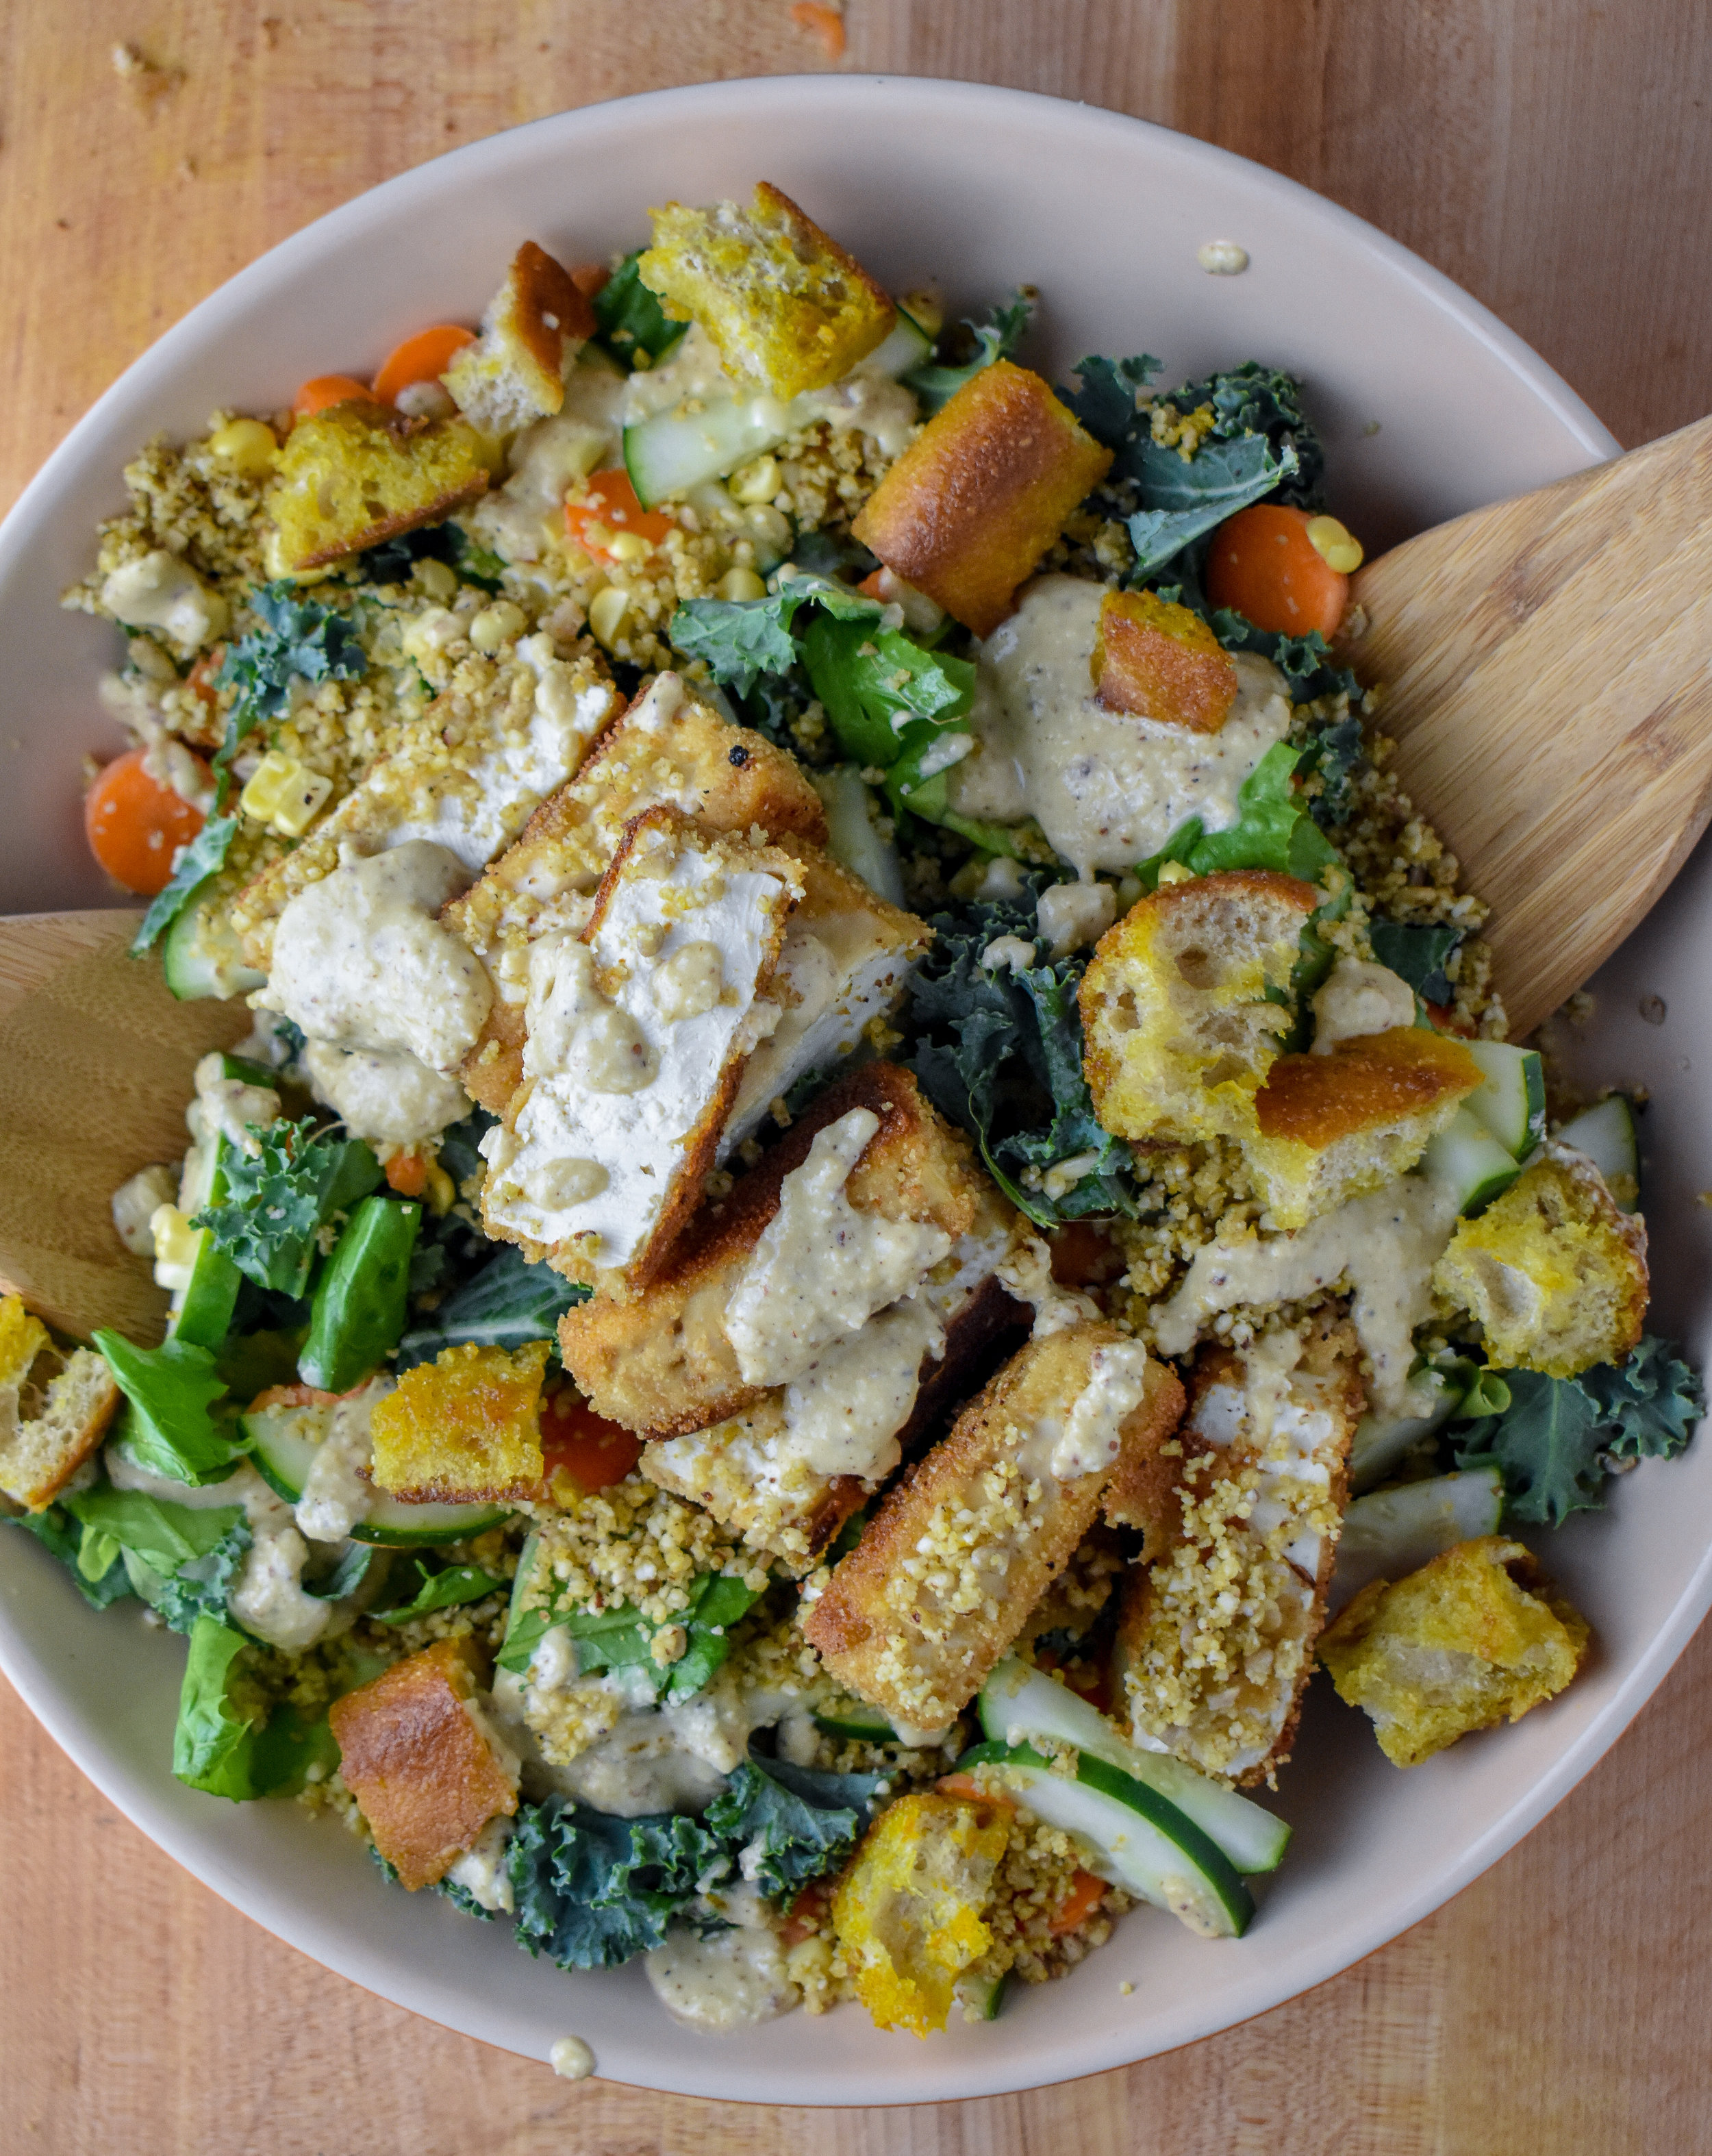 9. It's time to put together the salad. Divide the lettuce into four small bowls or serve in one large bowl. Add kale + romaine, chopped veggies, parm, croutons, and cutlets (chopped into smaller pieces). Drizzle on dressing, mix + serve. Eat! Enjoy!